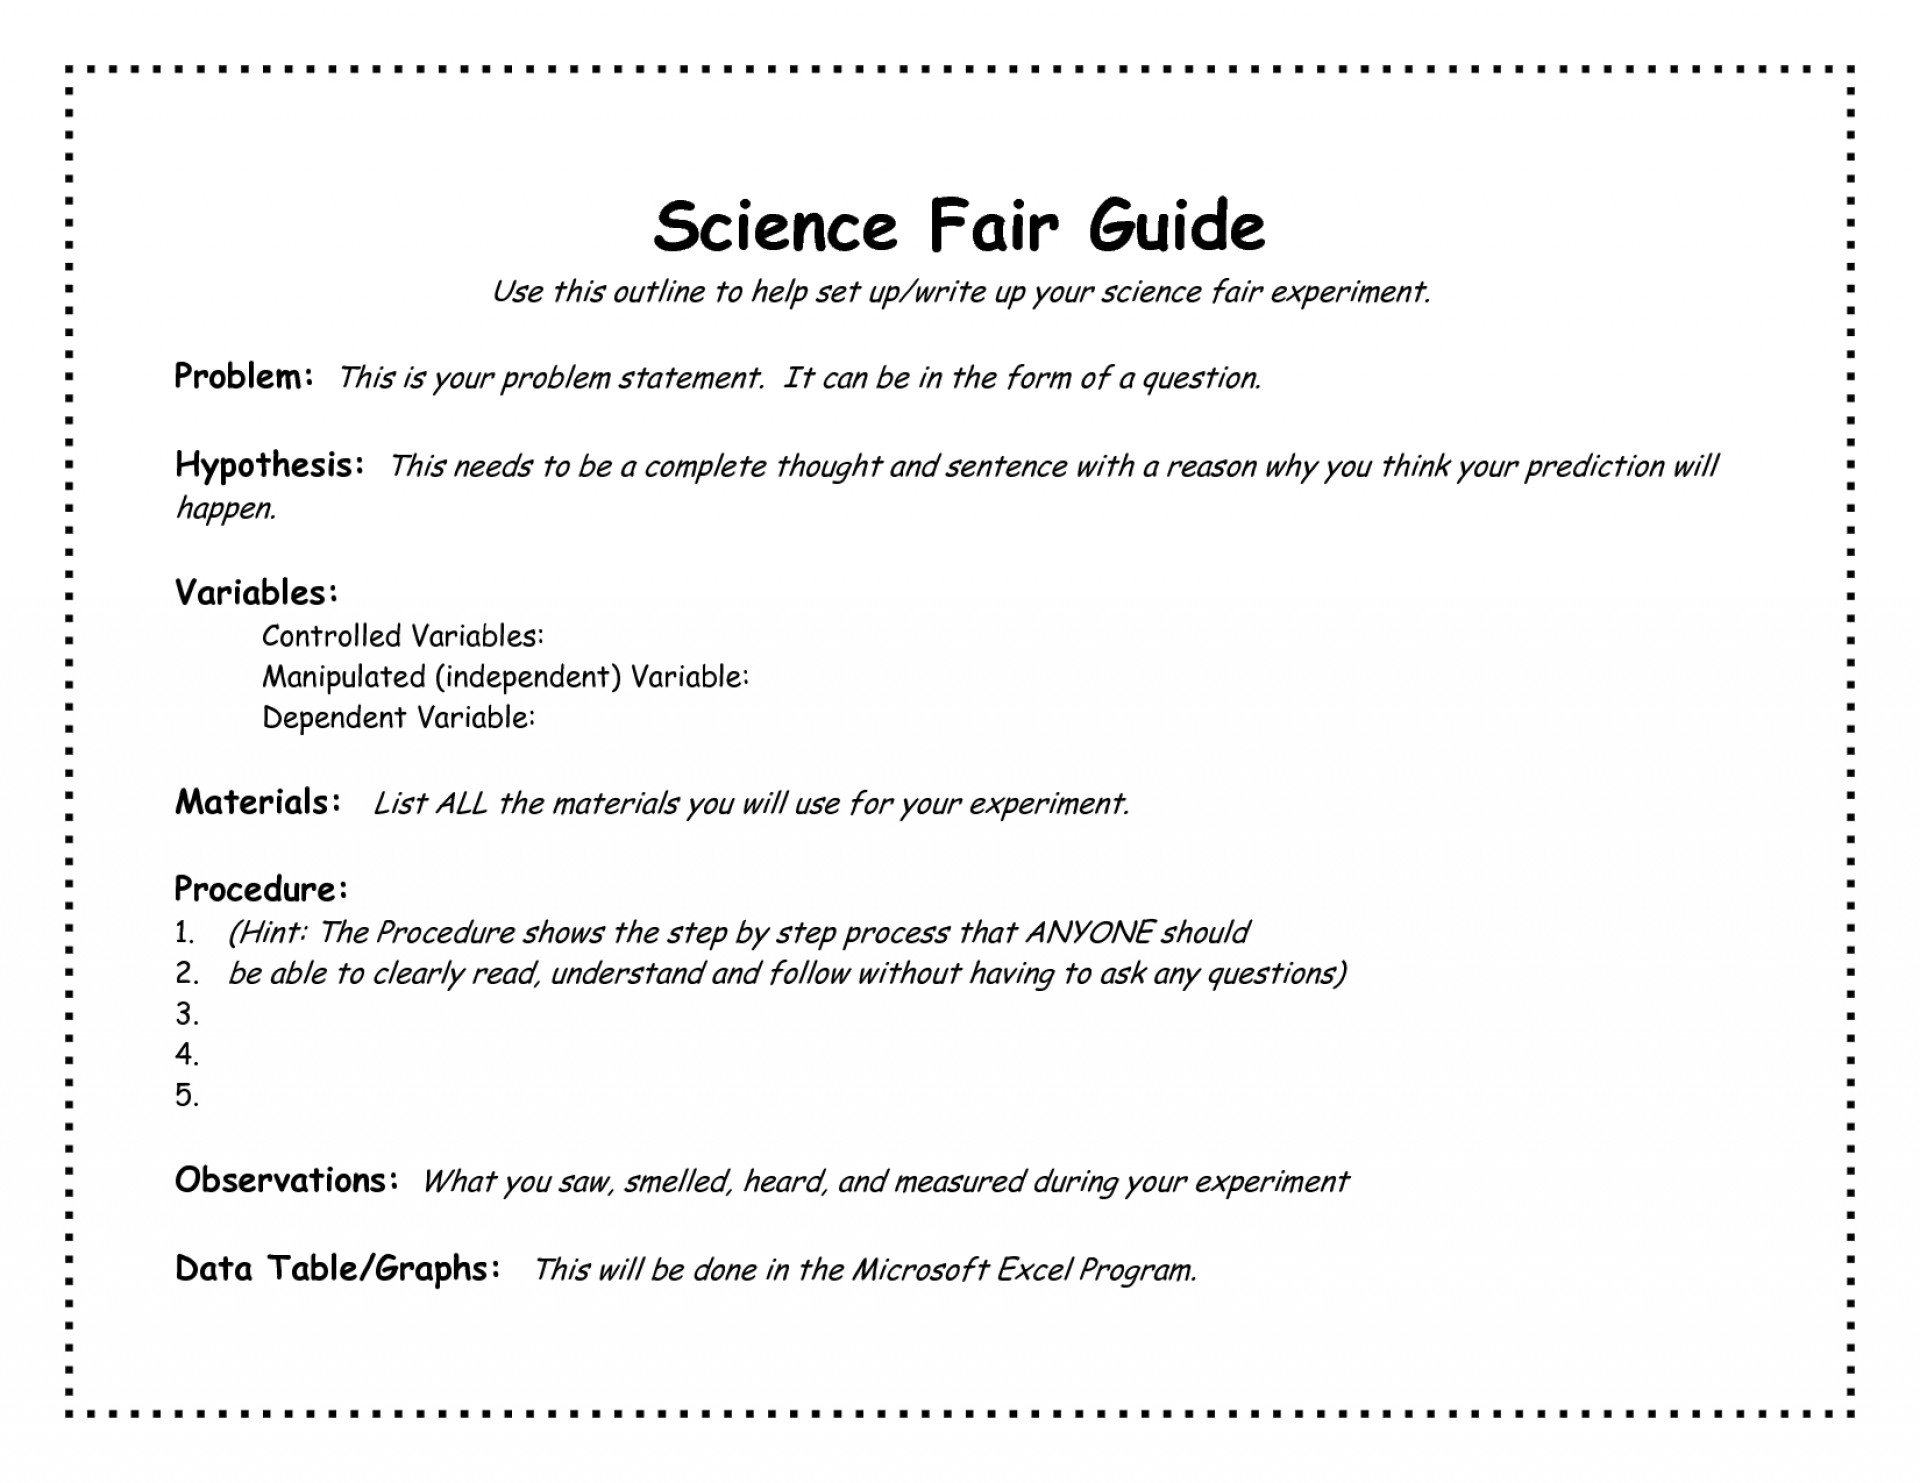 004 8th Grade Science Research Paper Outline Stunning 1920